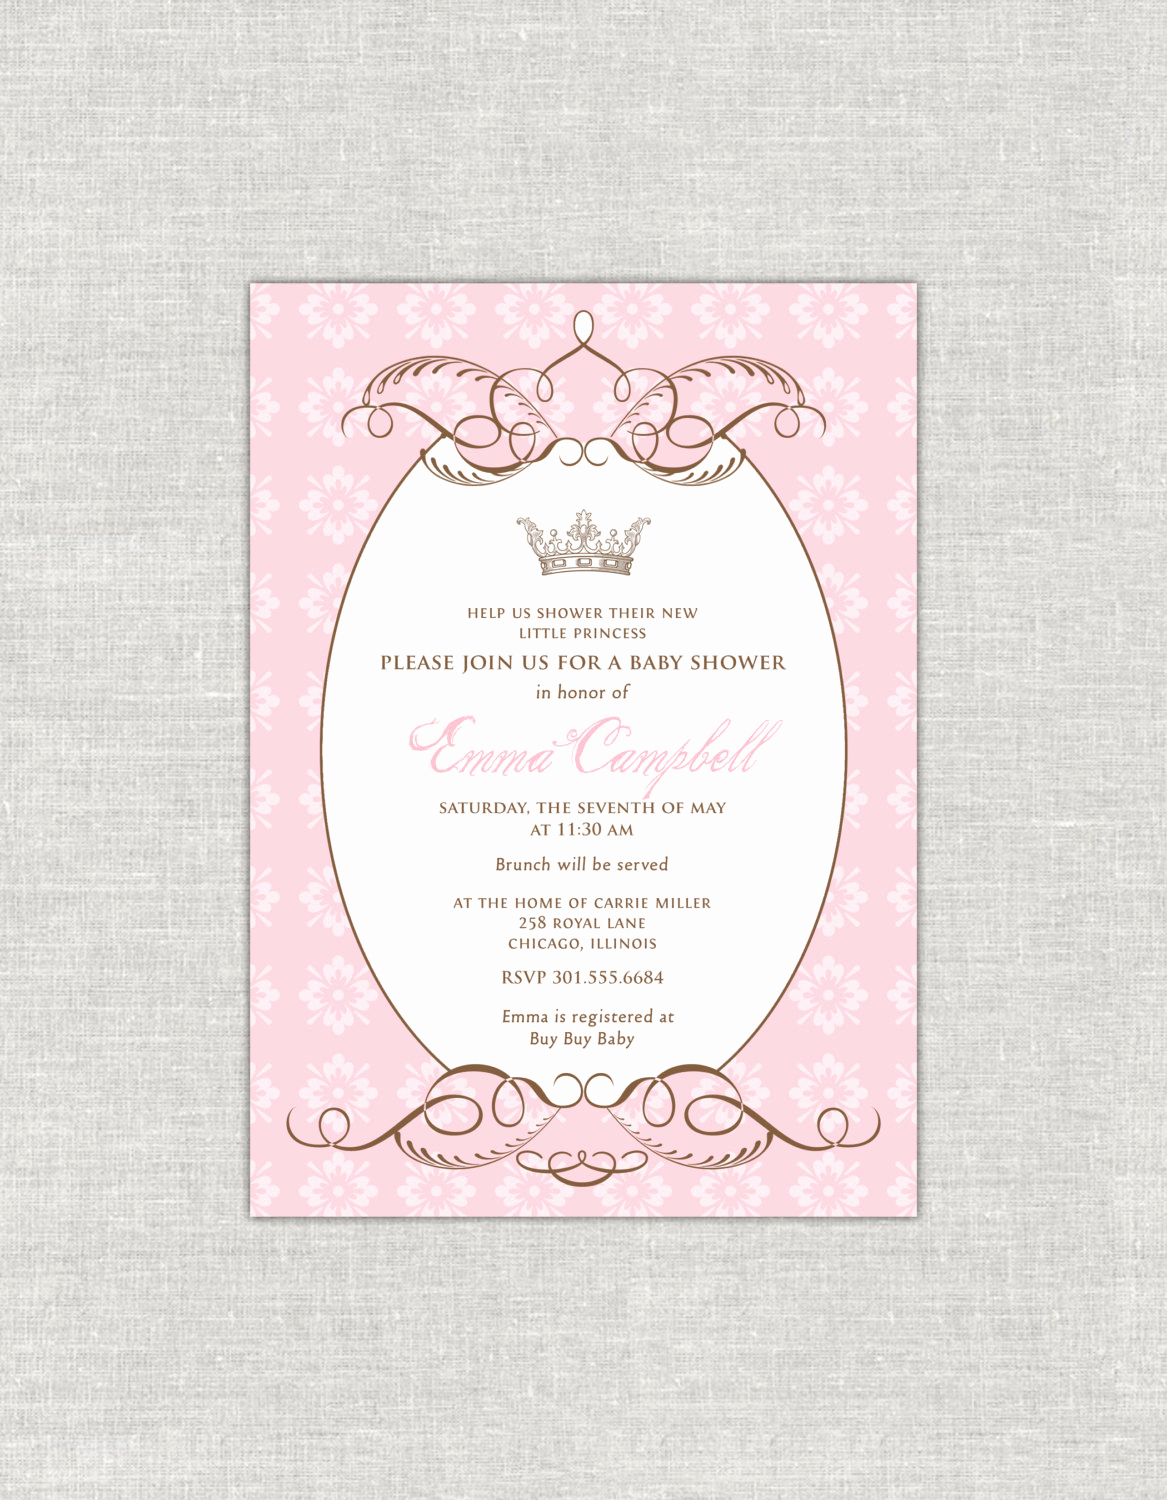 Royal Baby Shower Invitation Luxury Royal Baby Shower Invitation Princess Shower by